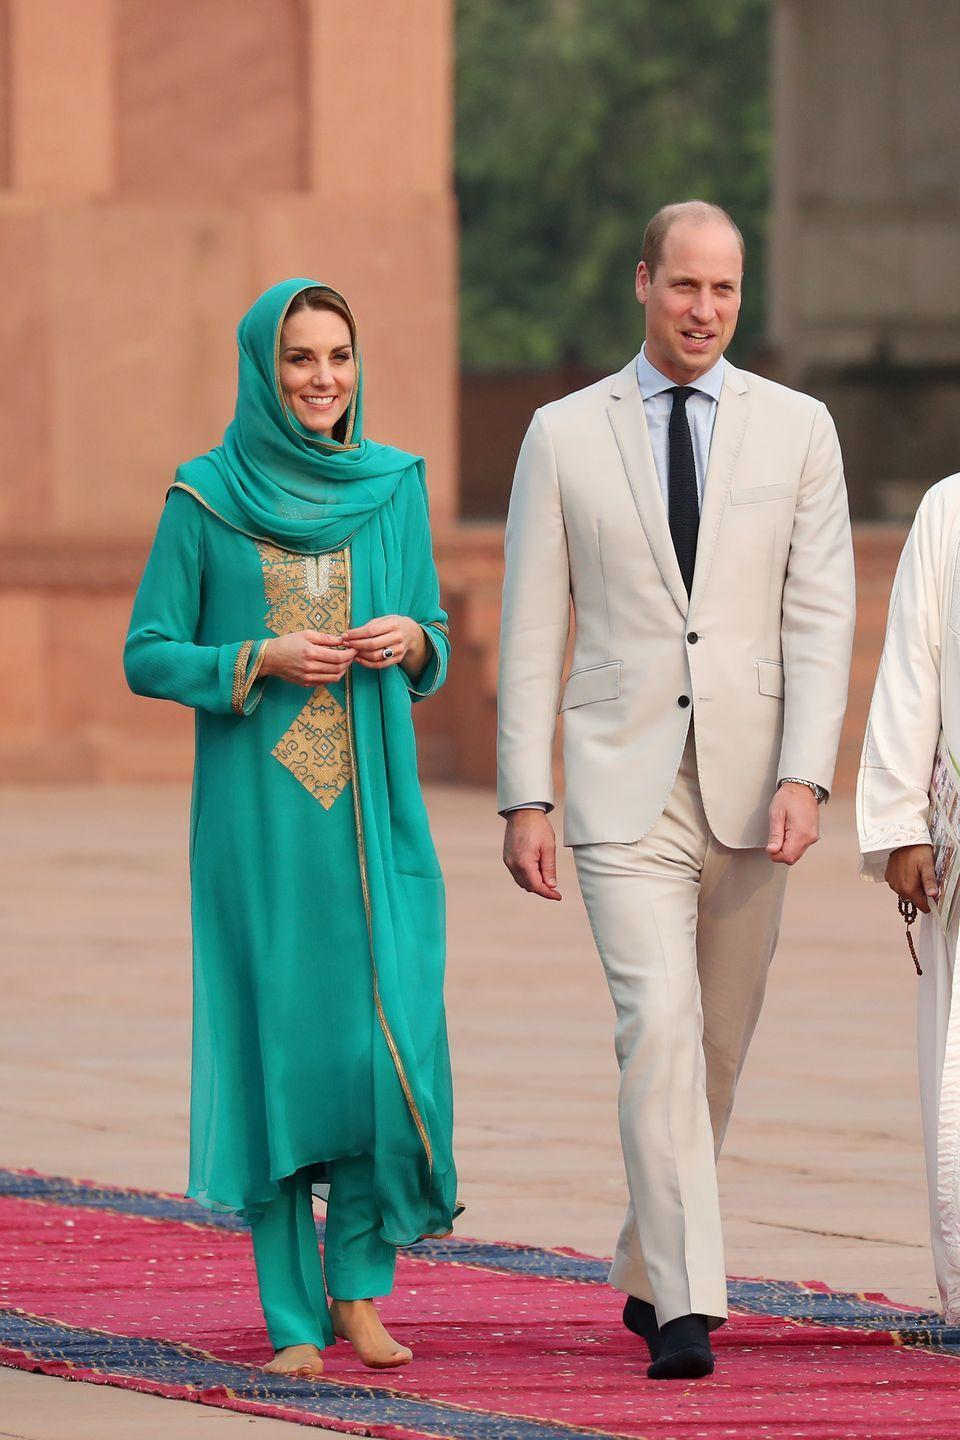 <p>The Duchess of Cambridge visits the Badshahi Mosque within the Walled City during day four of their royal tour of Pakistan. She wore a green and gold shalwar kameez. </p>